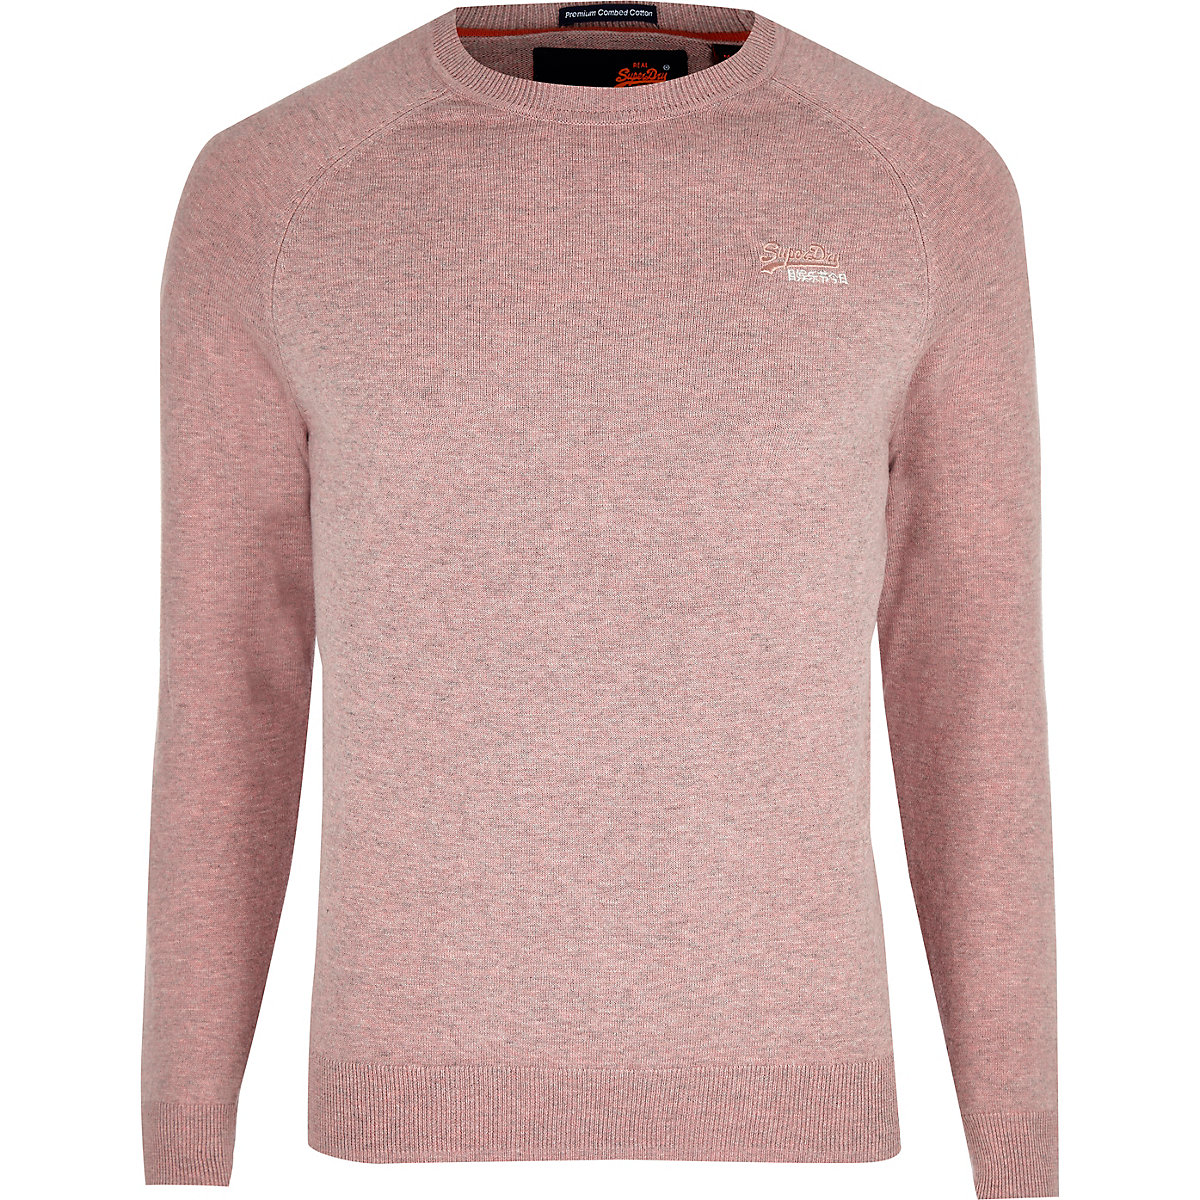 Superdry pink logo embroidered sweater